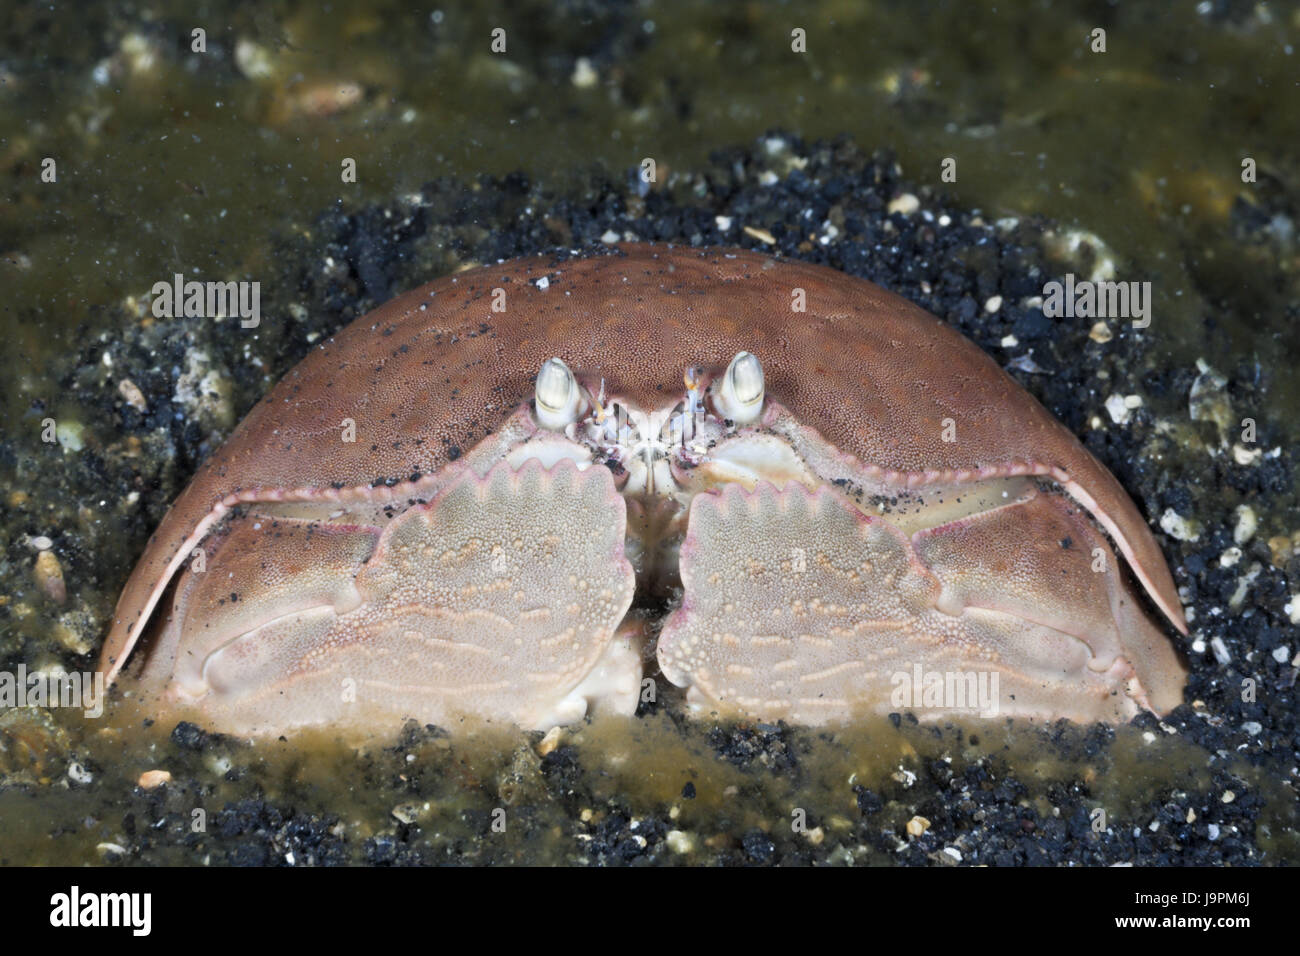 Pubic crab,Calappa calappa,Lembeh Strait,the north Sulawesi,Indonesia, - Stock Image